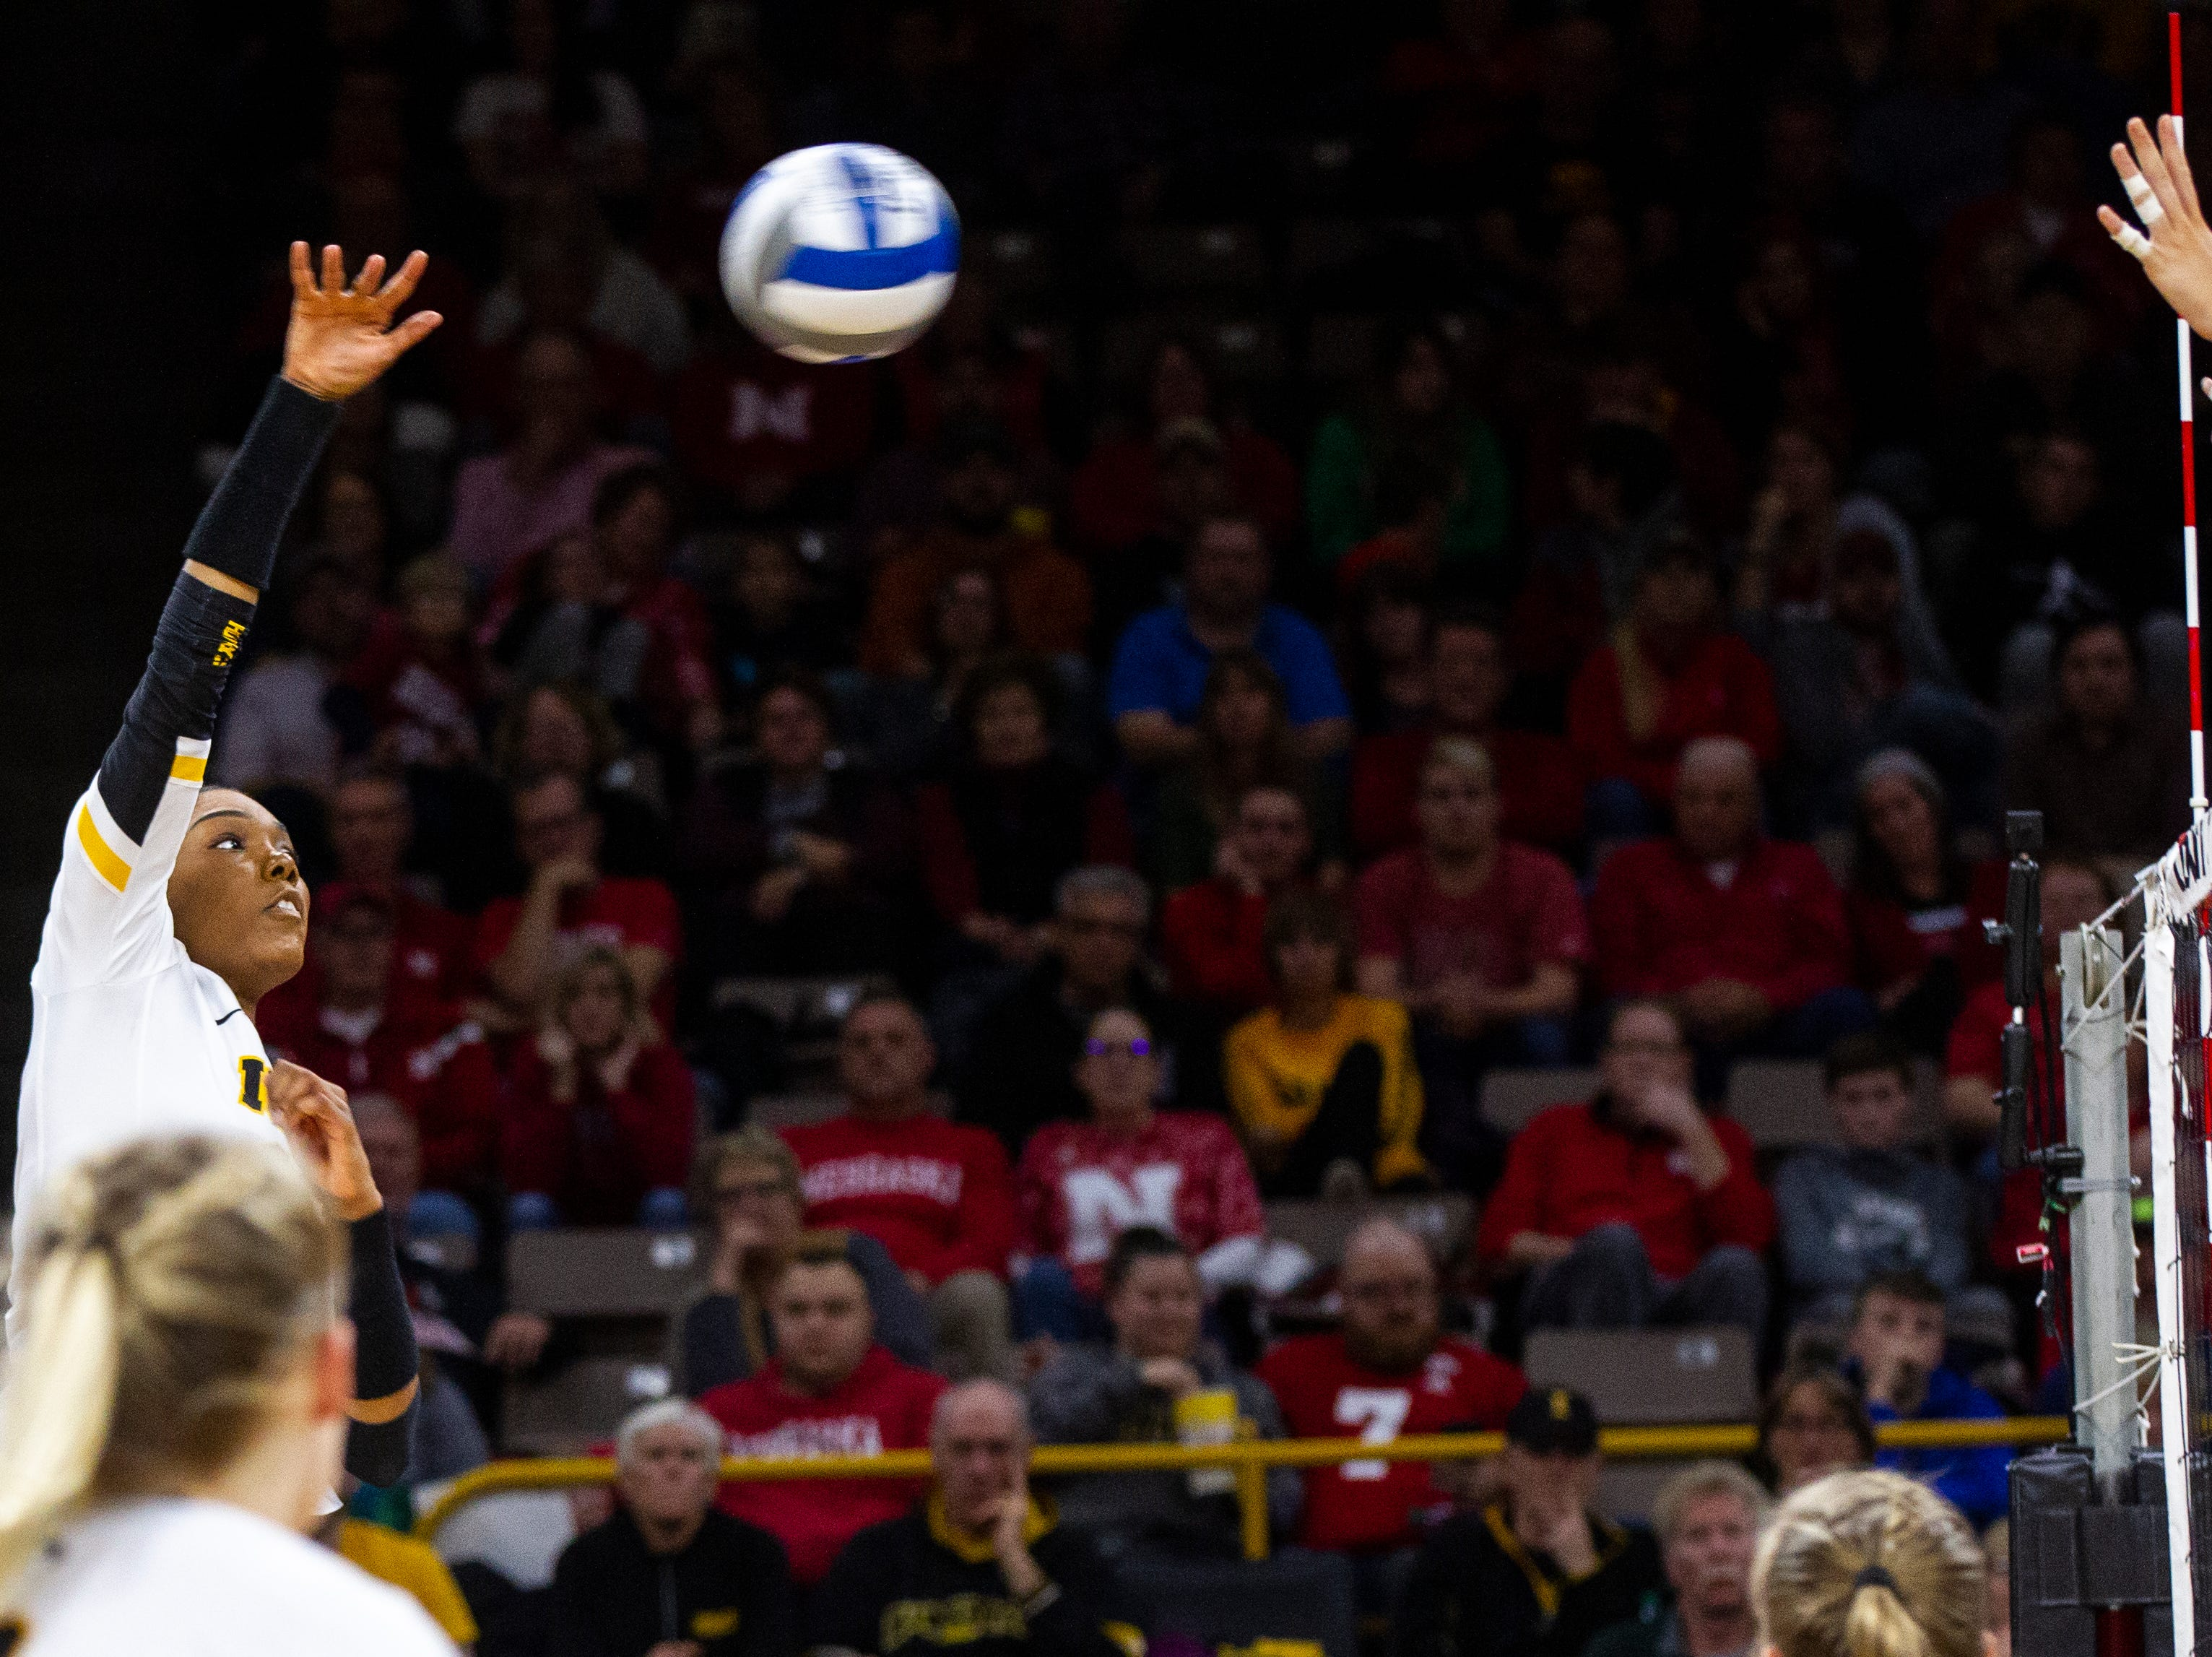 Iowa defensive specialist Maddie Slagle (15) attempts a kill during an NCAA volleyball game on Wednesday, Nov. 7, 2018, at Carver-Hawkeye Arena in Iowa City.